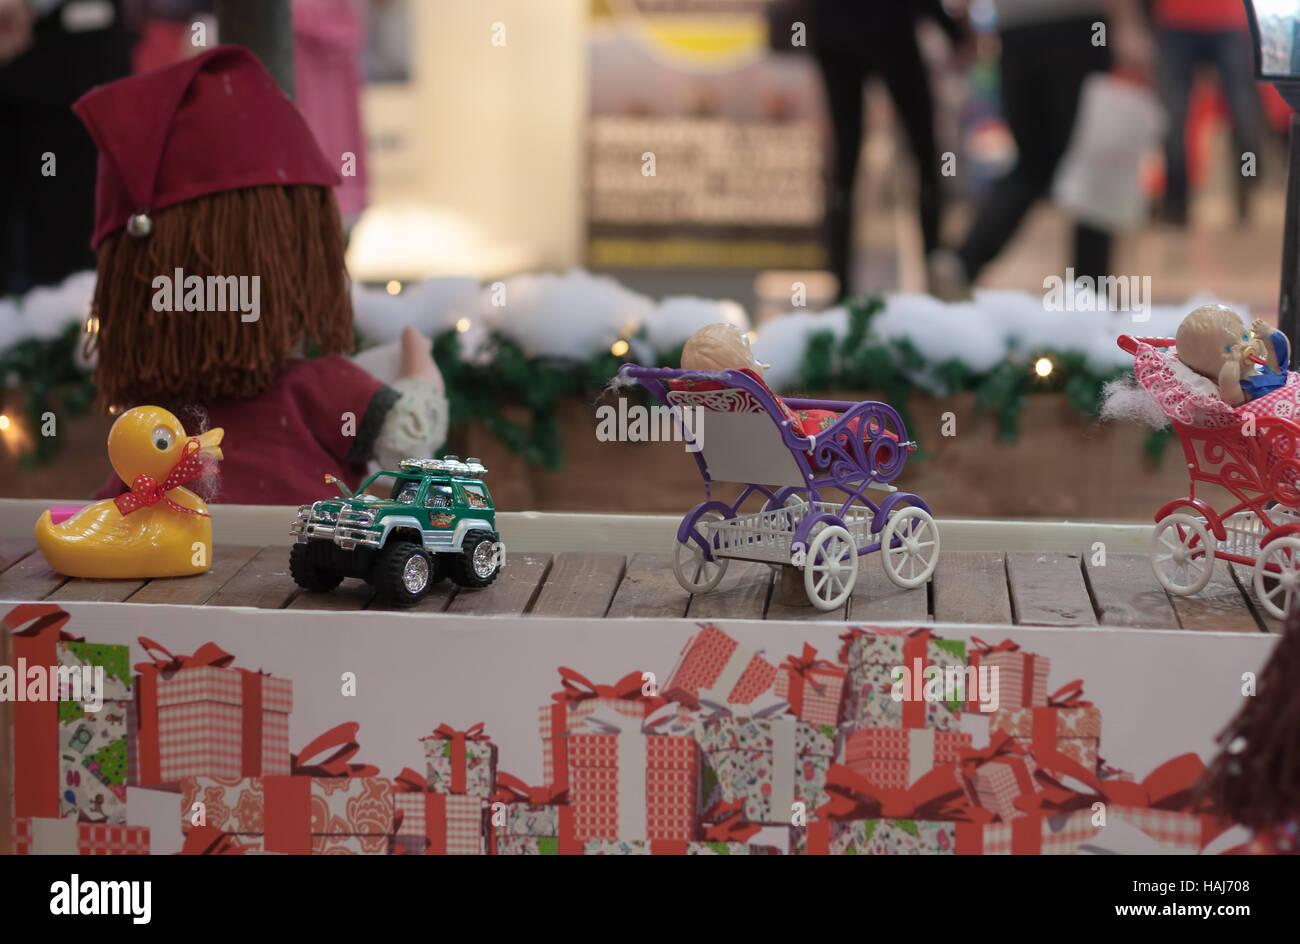 BRNO,CZECH REPUBLIC-NOVEMBER 19,2016:Miniature toys  on conveyor belt  at shopping center Olympia on November 19, - Stock Image